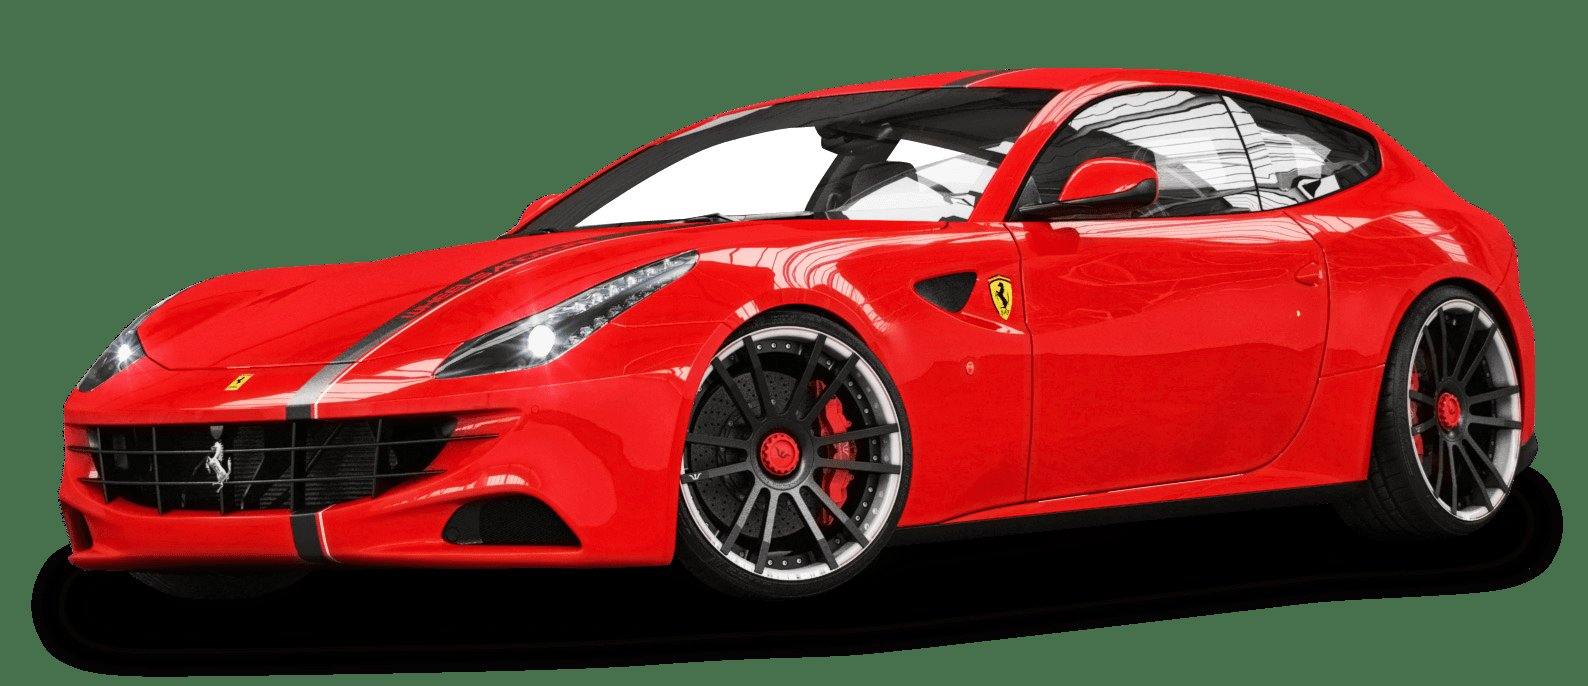 New Ferrari Red Car Png Image Pngpix On This Month